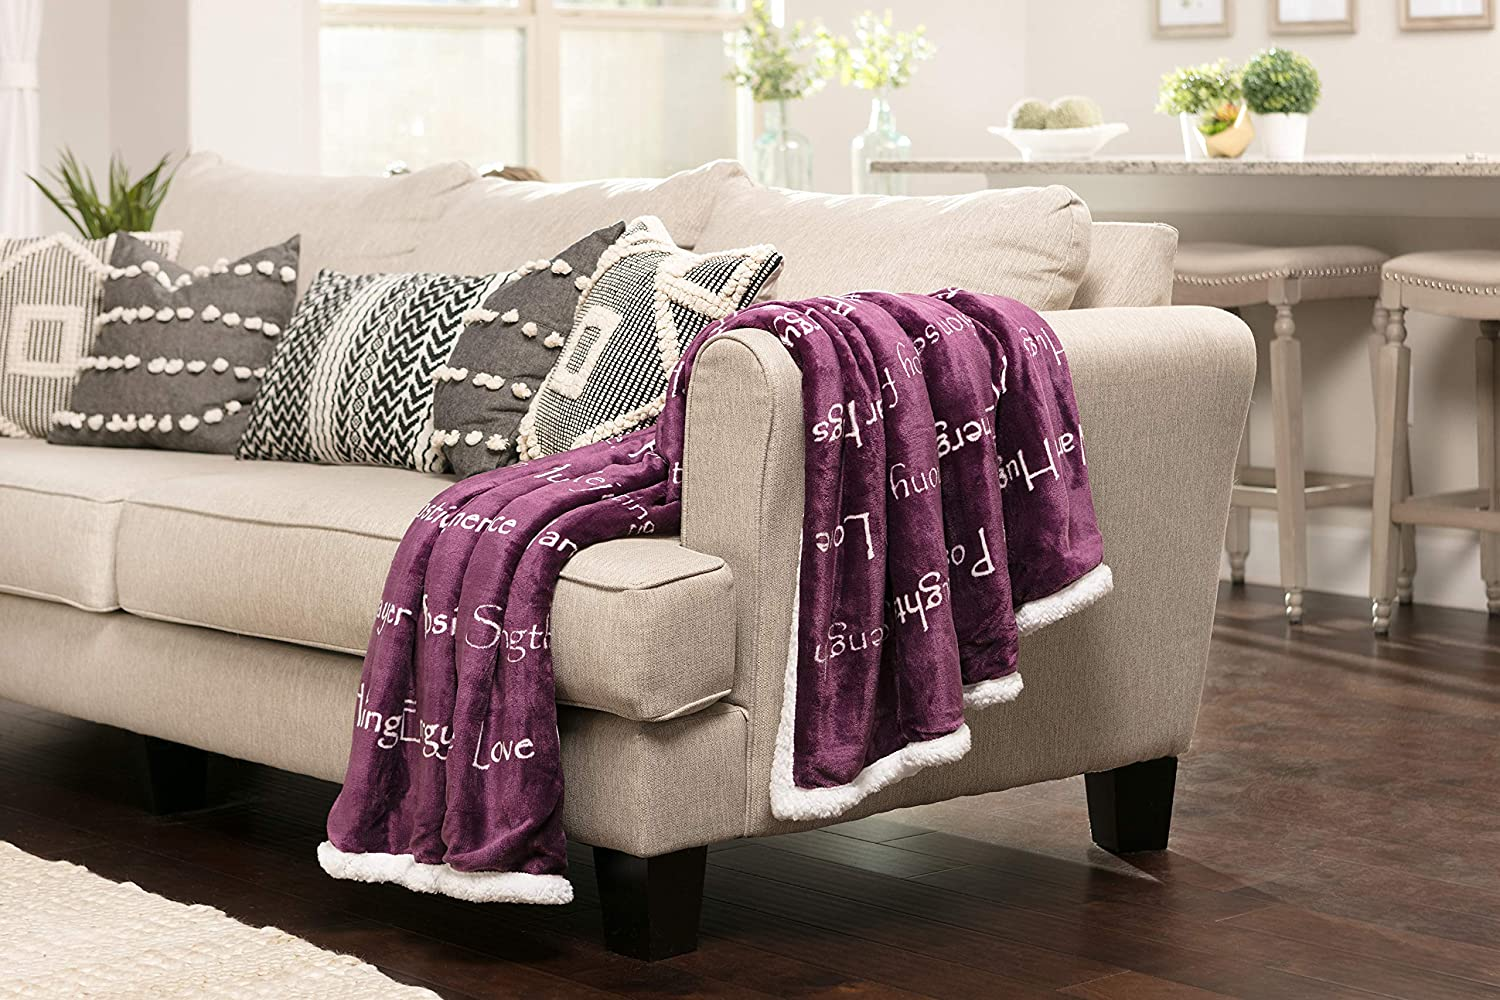 Chanasya Warm Hugs Positive Energy Healing Thoughts Caring Gift Throw Blanket - Sherpa Microfiber Comfort Gift Throw - Get Well Soon Gift for Women Men Cancer Patient - Aubergine Blanket: Home & Kitchen